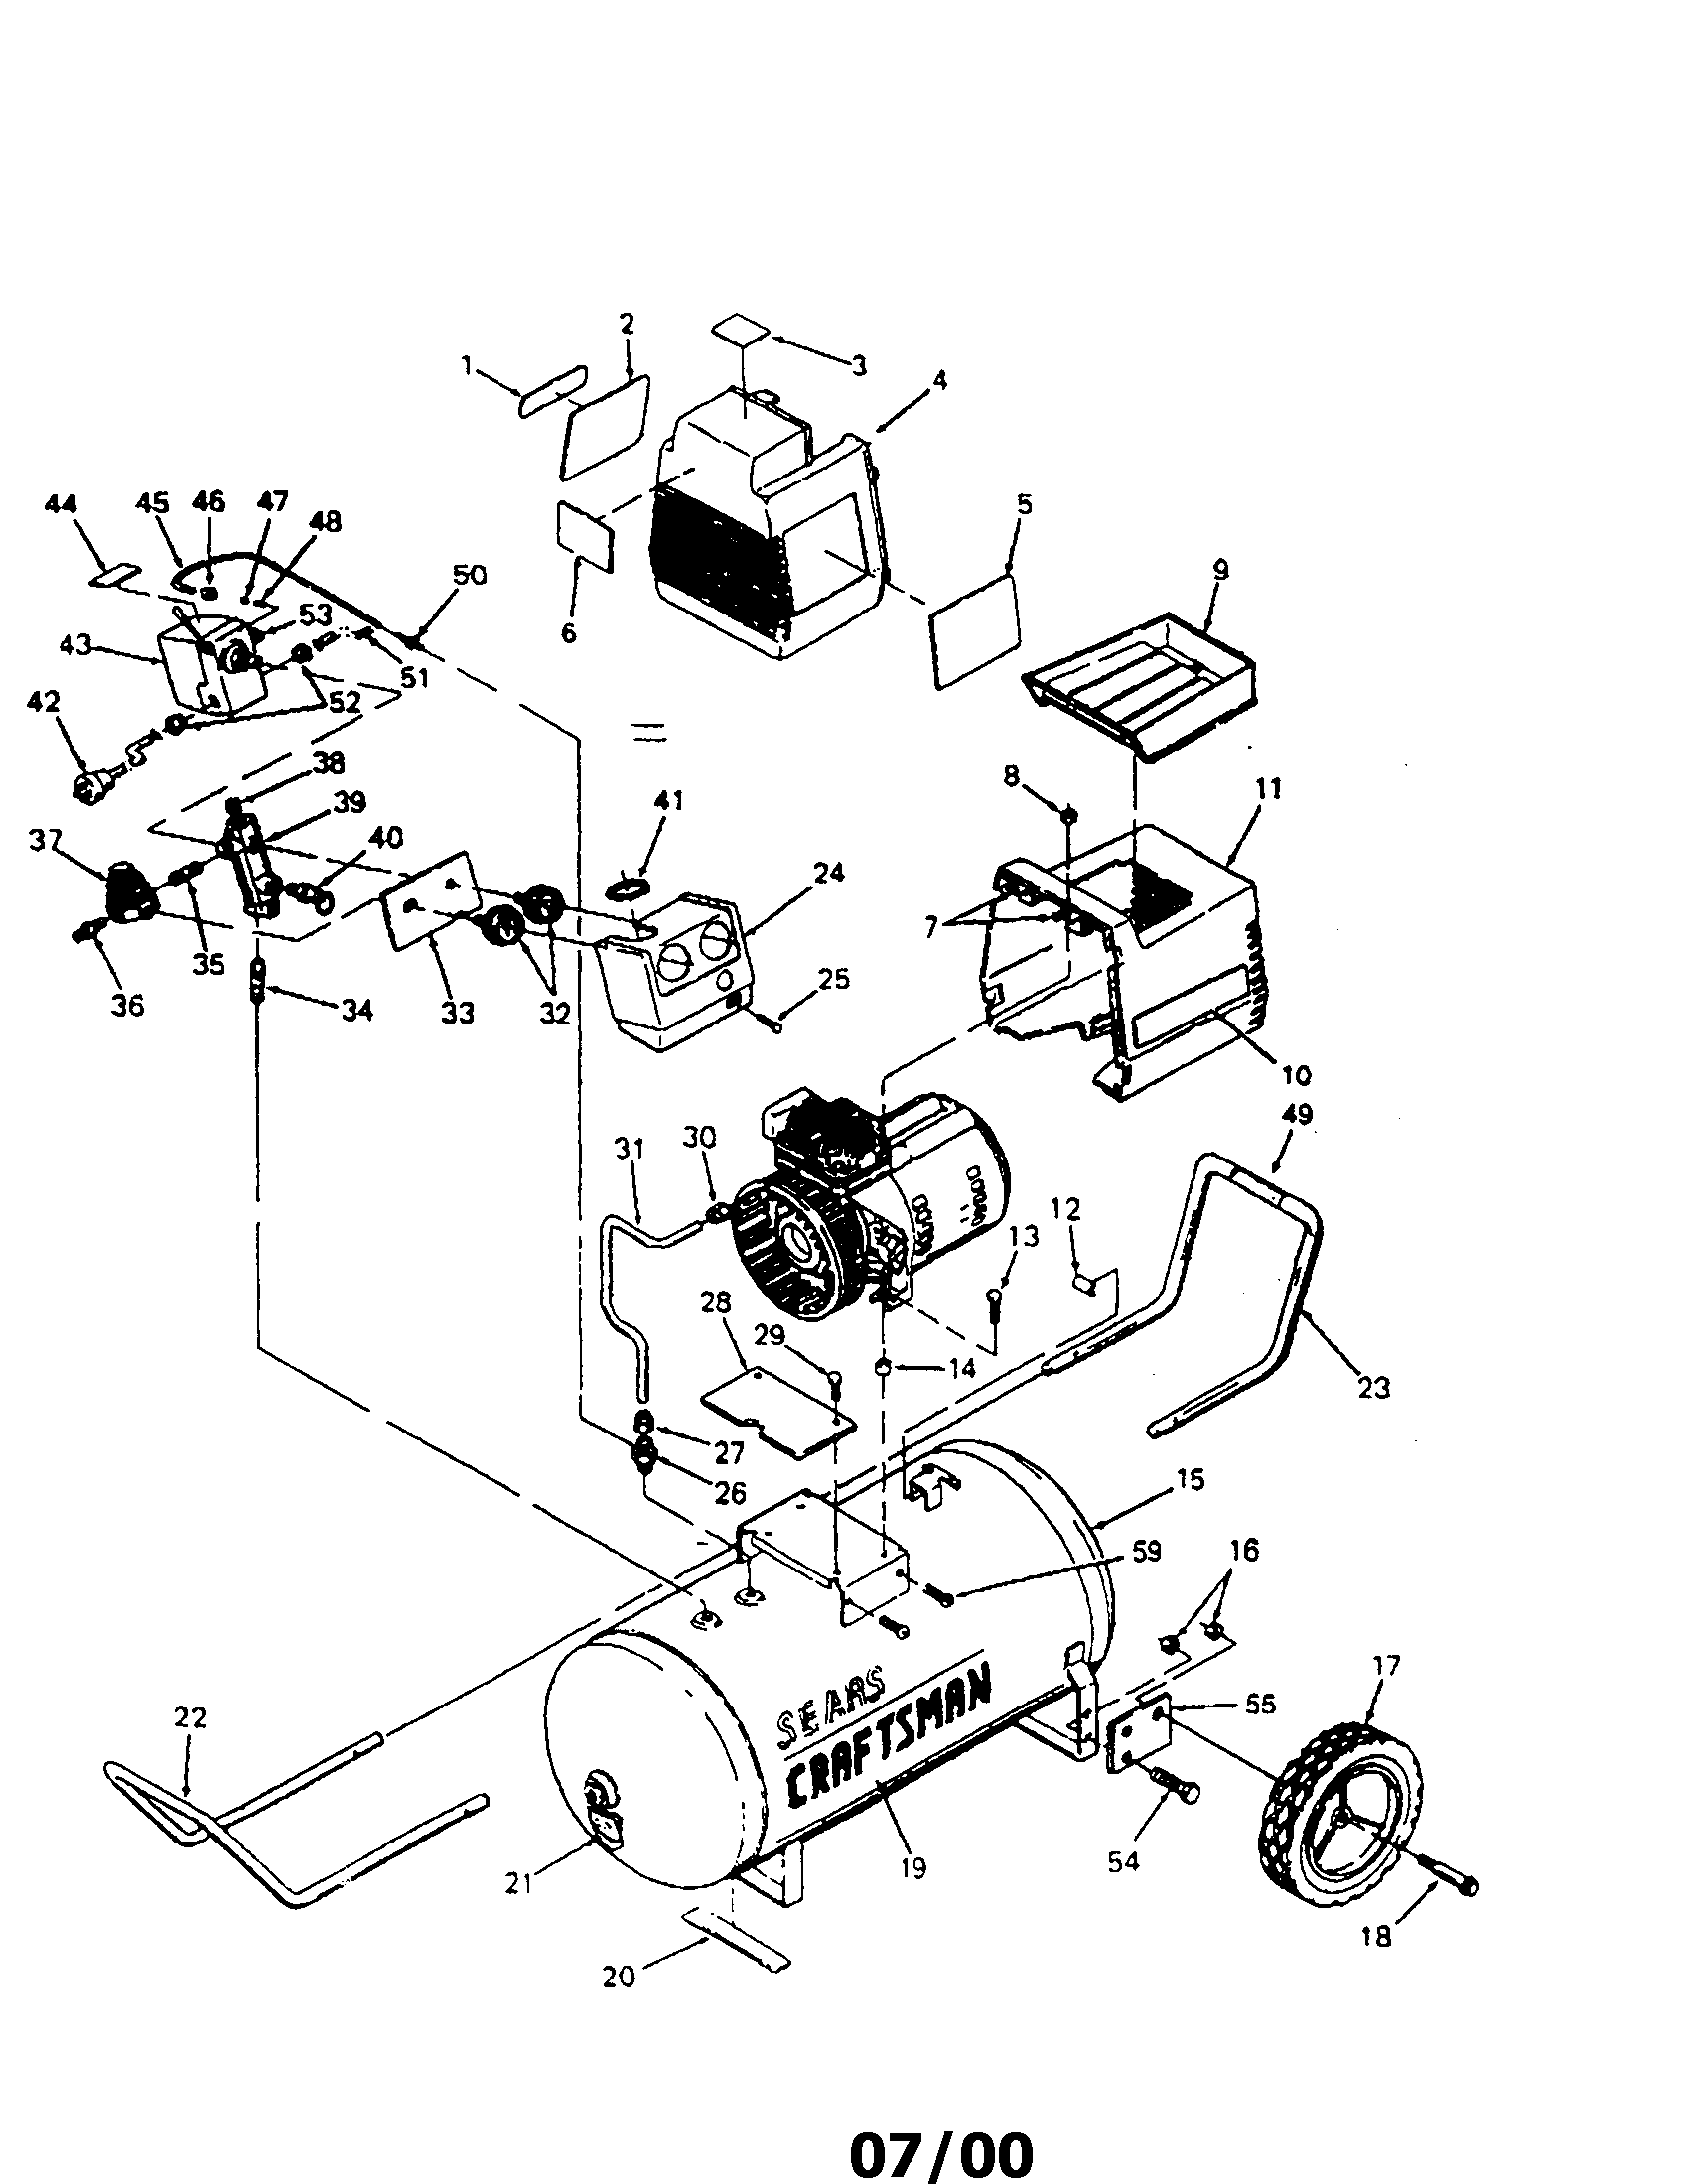 919.153231_craftsman_compressor_parts 919 153231 sears craftsman air compressor parts abac air compressor wiring diagram at mifinder.co